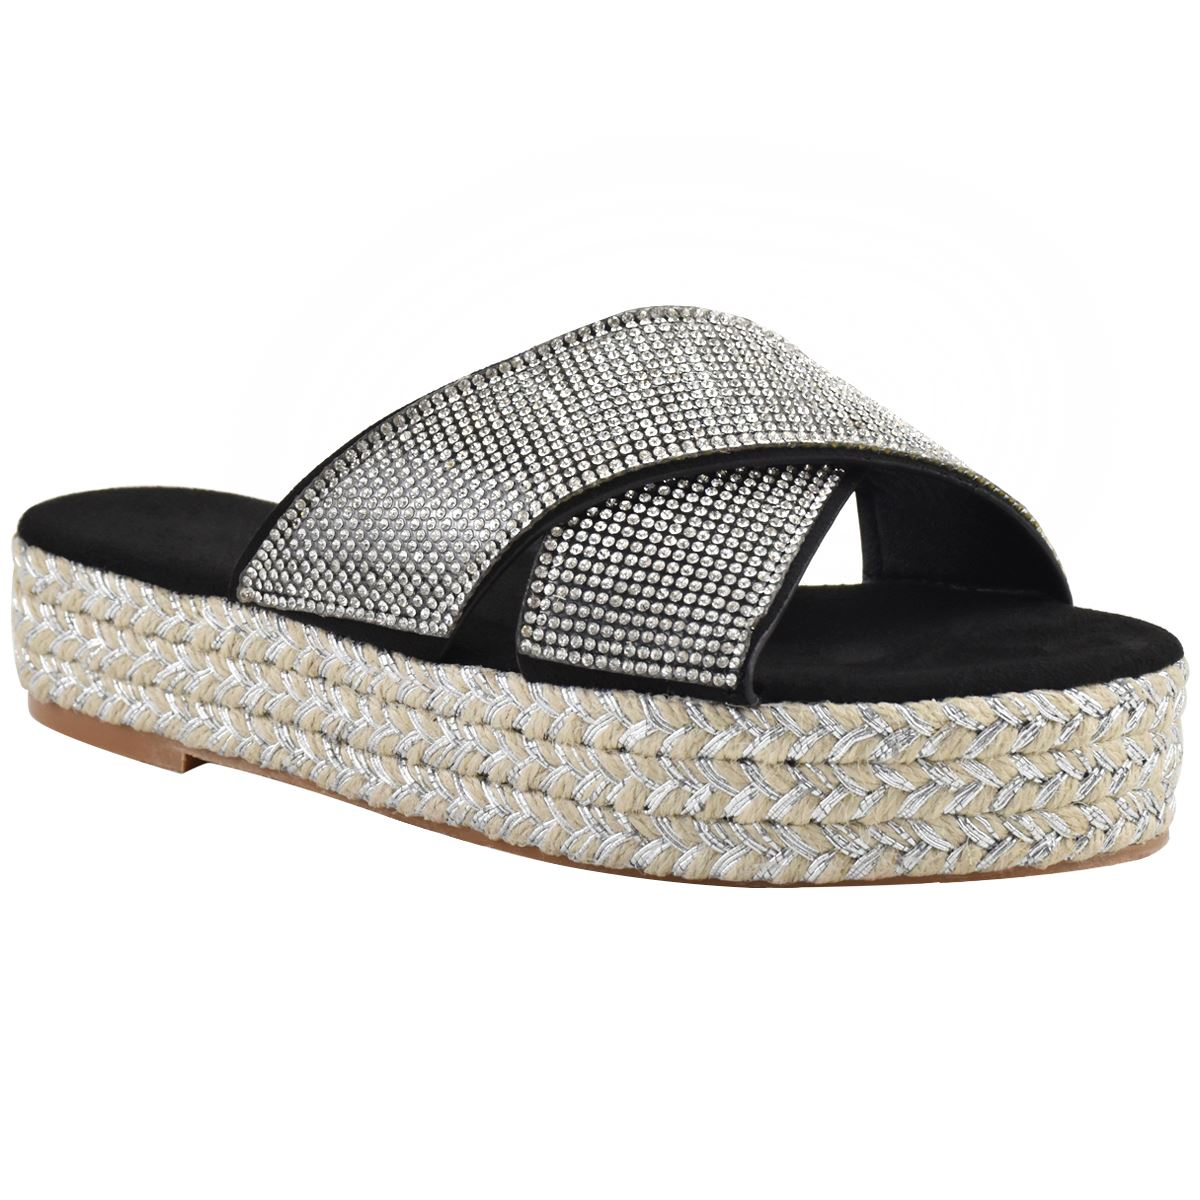 Womens-Diamante-Slip-On-Sandals-Flatforms-Sparkly-Platform-Summer-Size-UK thumbnail 3